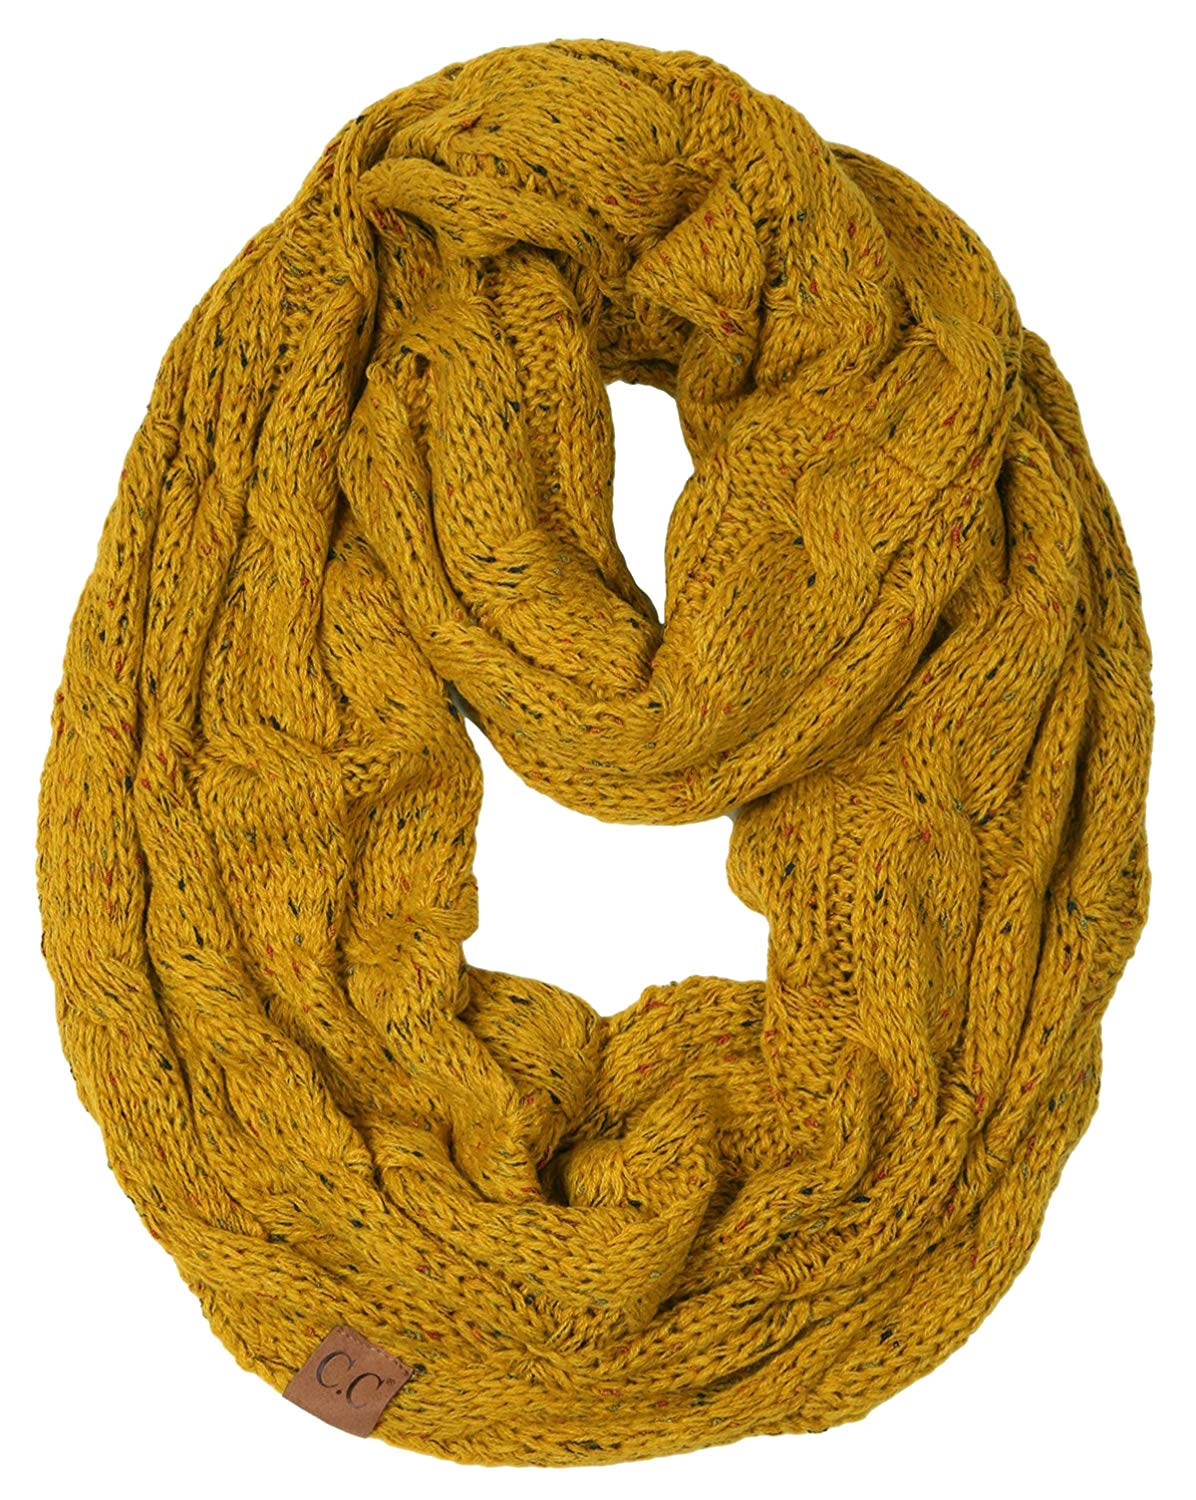 S1-6033-72 Funky Junque Infinity Scarf - Mustard (Confetti) by Funky Junque